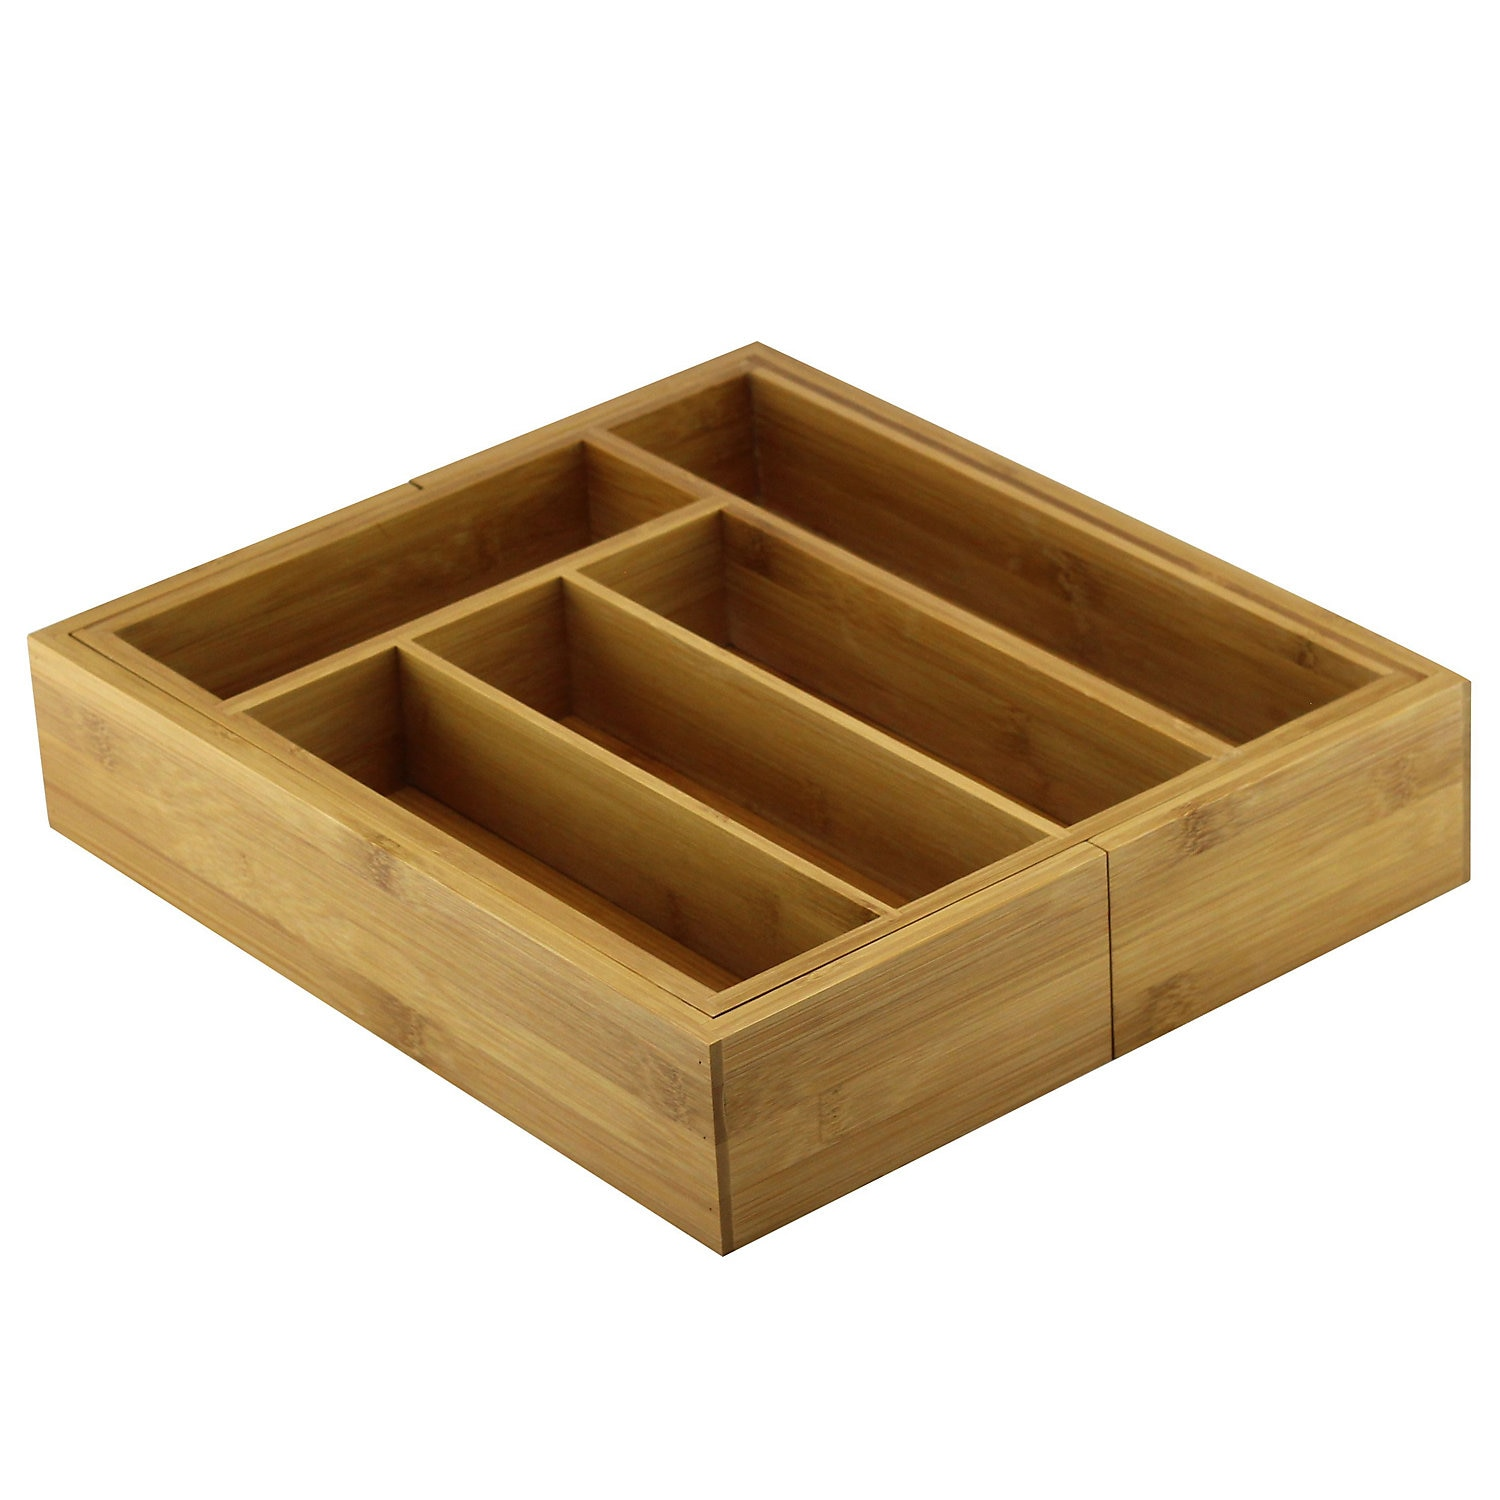 Cooke & Lewis Bamboo Extendable Cutlery Tray @B&Q